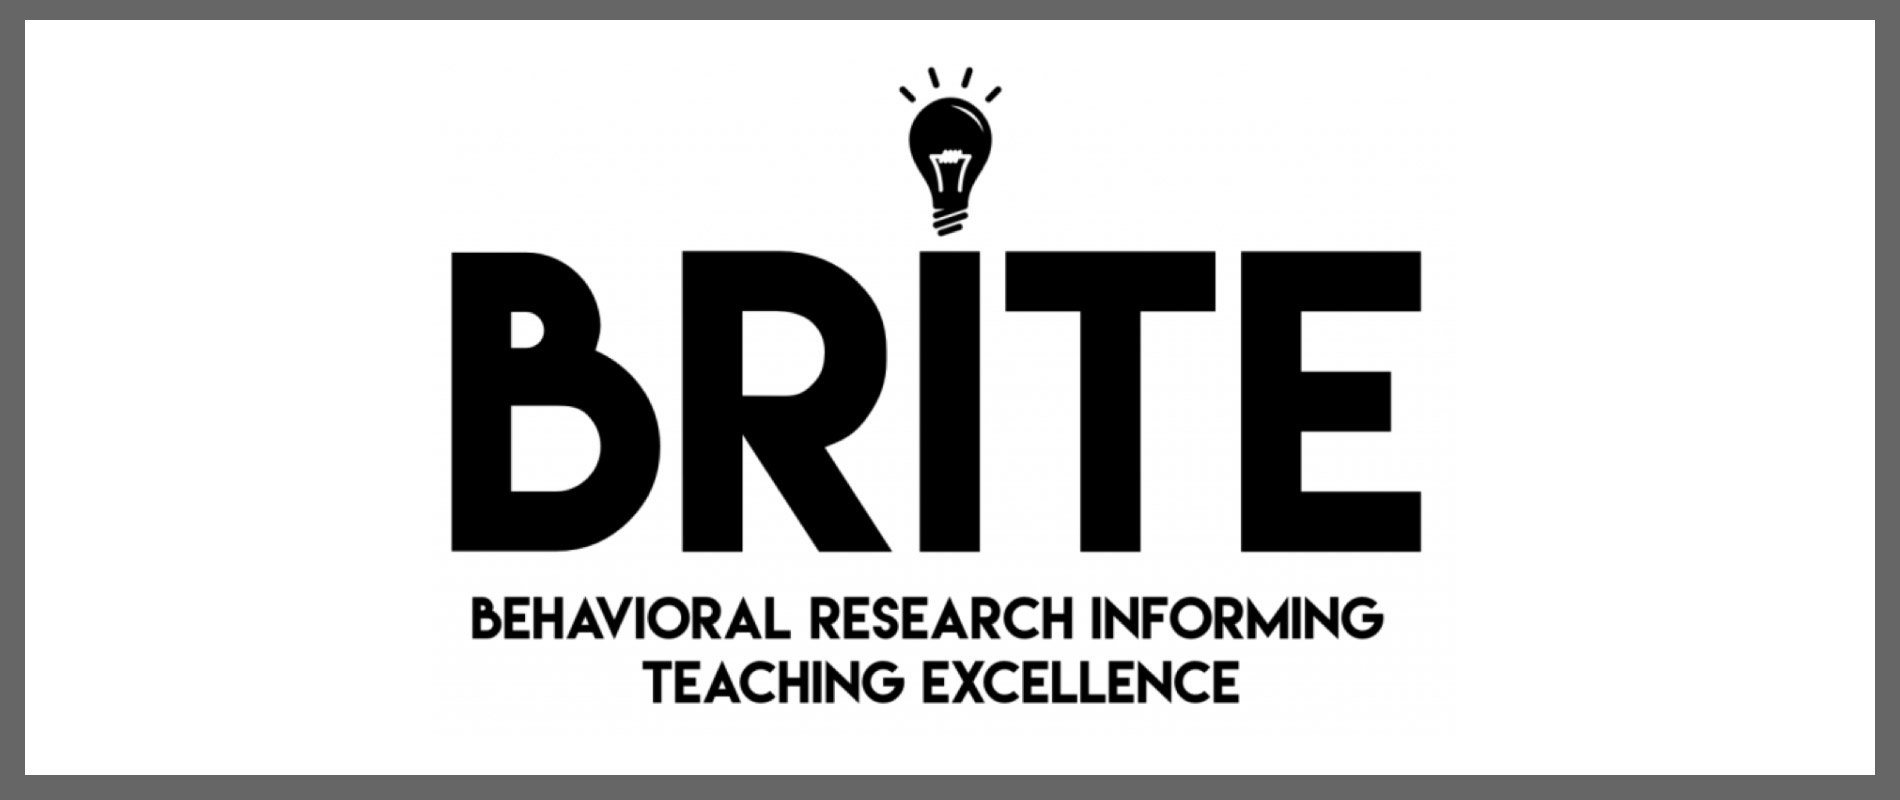 BRITE - Behavioral Research Informing Teaching Excellence